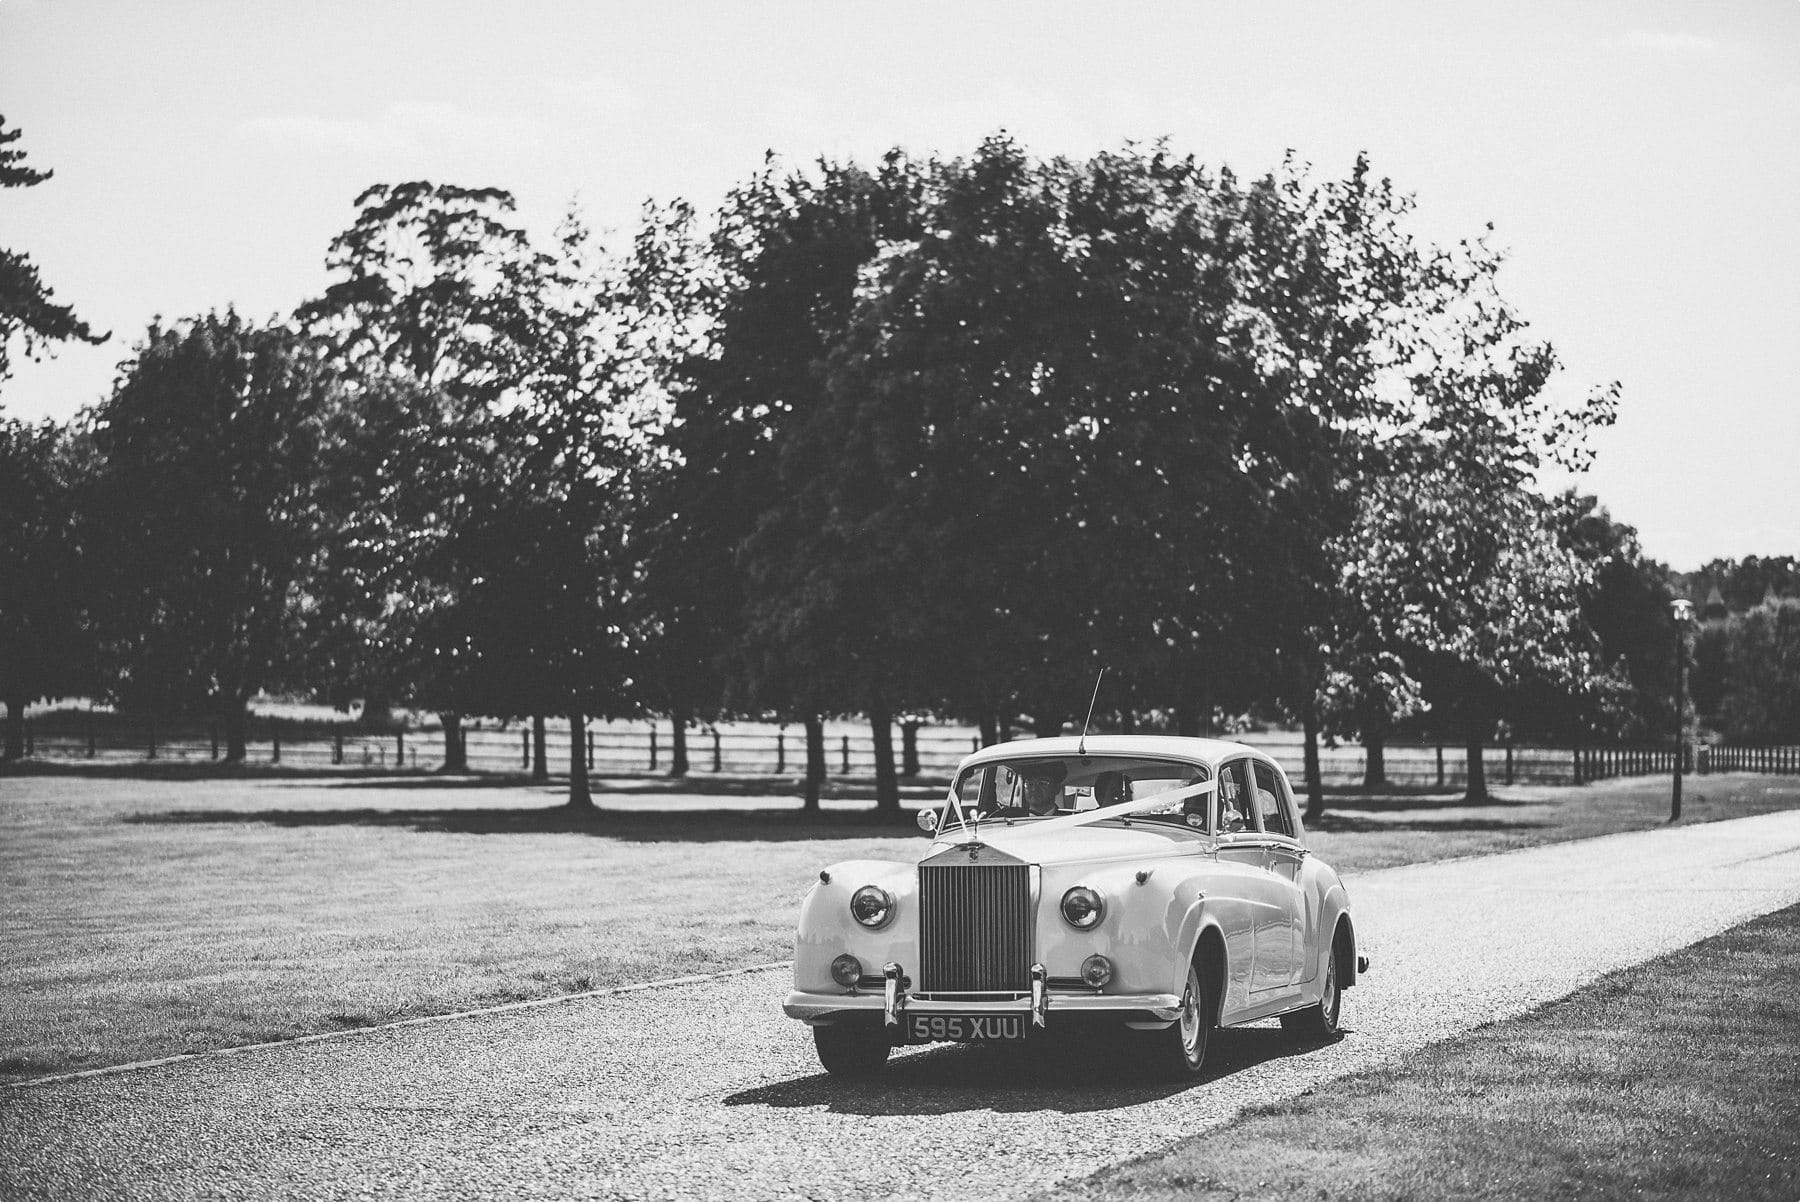 Vintage Rolls Royce wedding car driving down the long drive at Horsley Towers